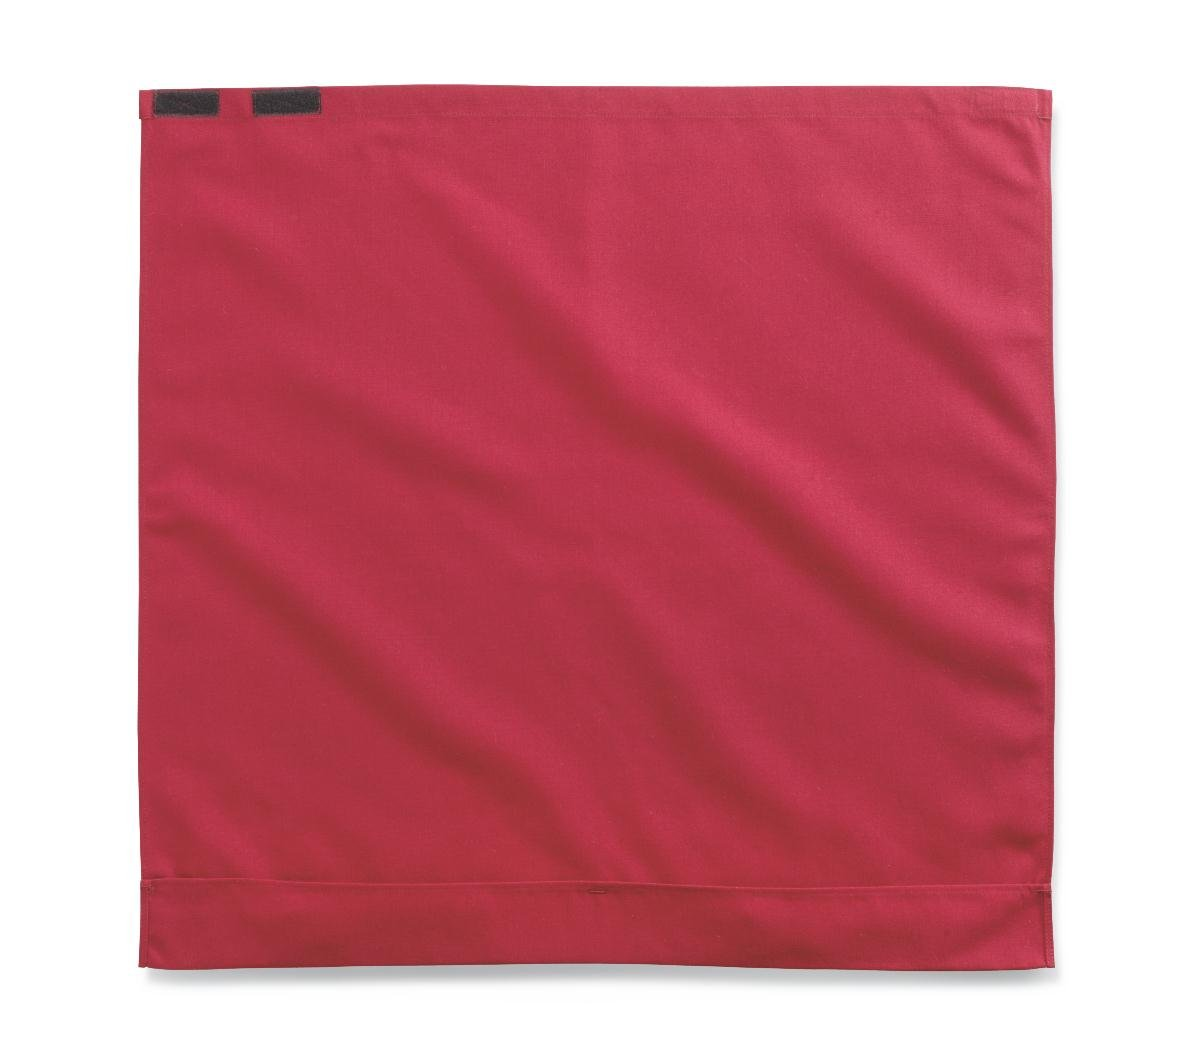 Medline MDT014117BURG Classic Style Dignity Napkin with Hook-and-Loop Closure, 27.5'' x 27'', Burgundy (Pack of 24)